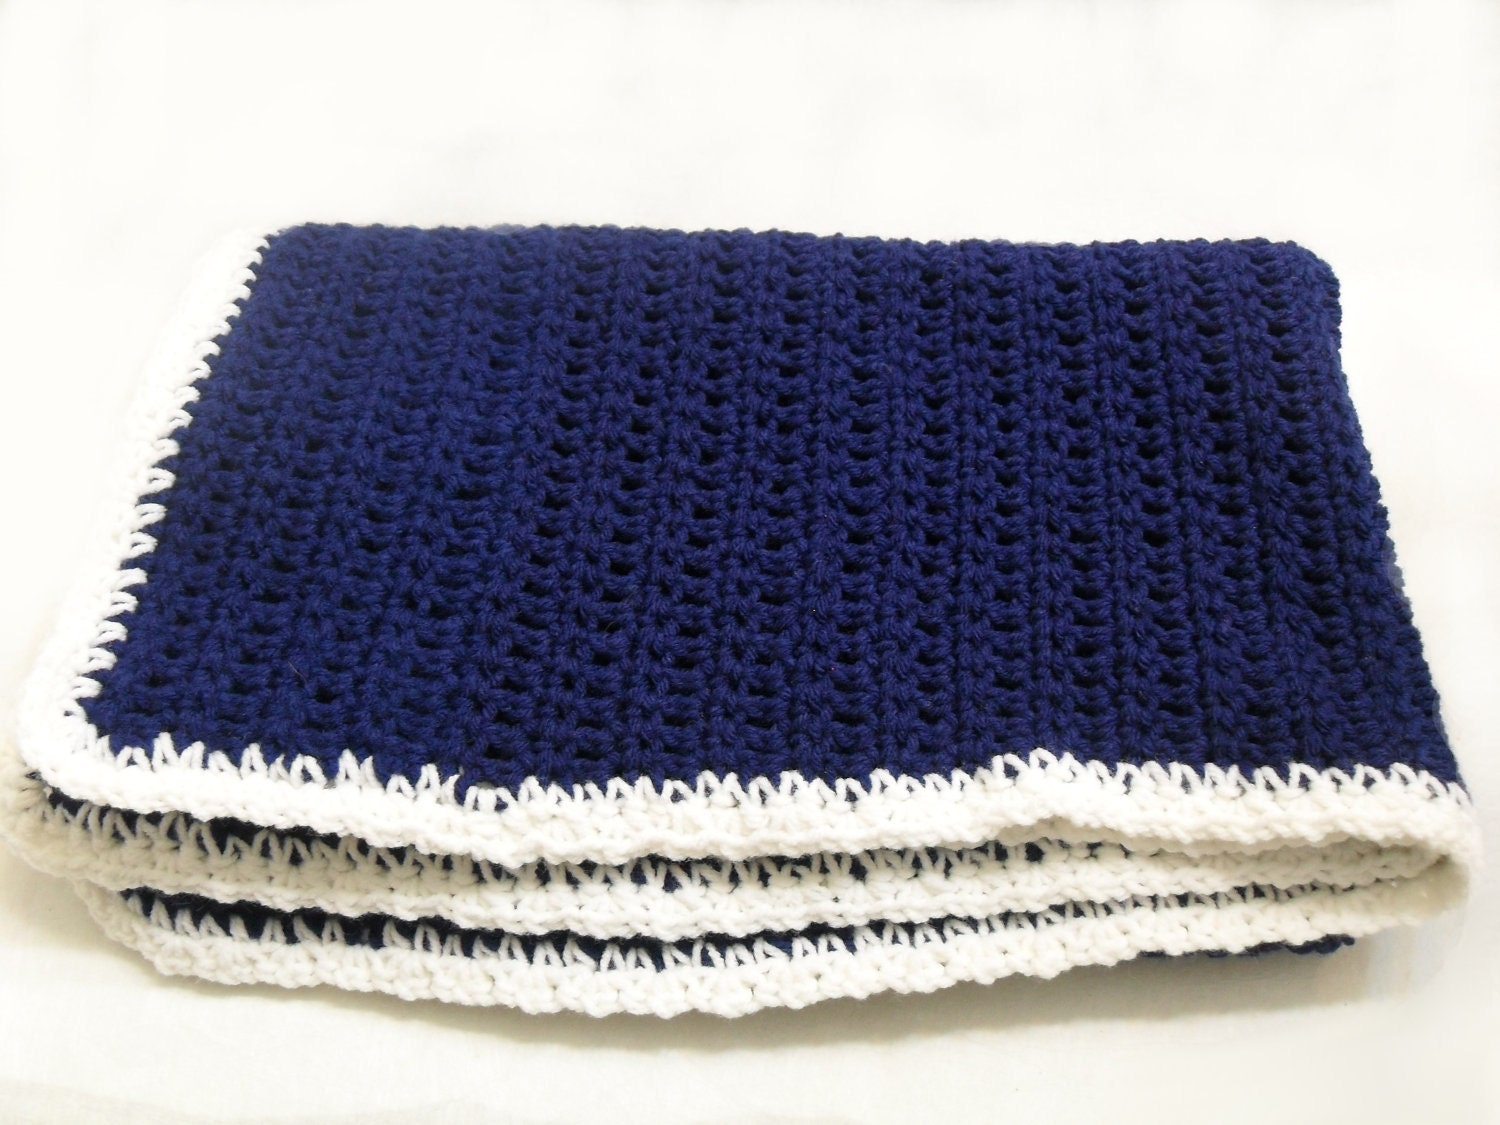 Crochet Baby Blanket In Navy Blue And White By Addsomestitches